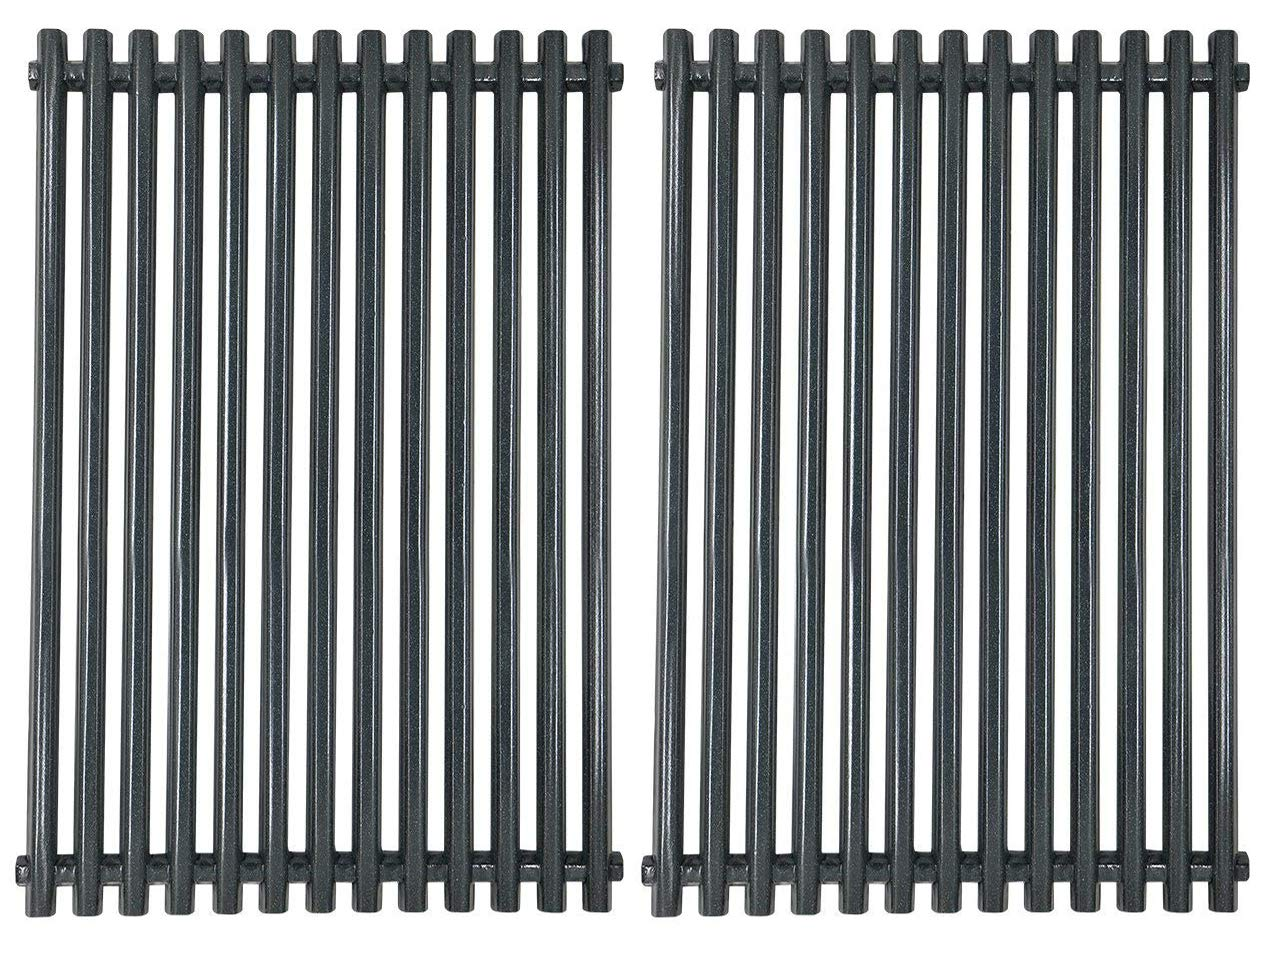 Broilmann Cooking Grill Grid Grates for Weber Spirit Genesis Grills, Lowes Model Grills Cooking Grate Aftermarket BBQ Barbecue Cooking Rack (11 3/4'' x 17 1/4''), 7527 9869 7526 7525 (Porcelain Steel) by Broilmann